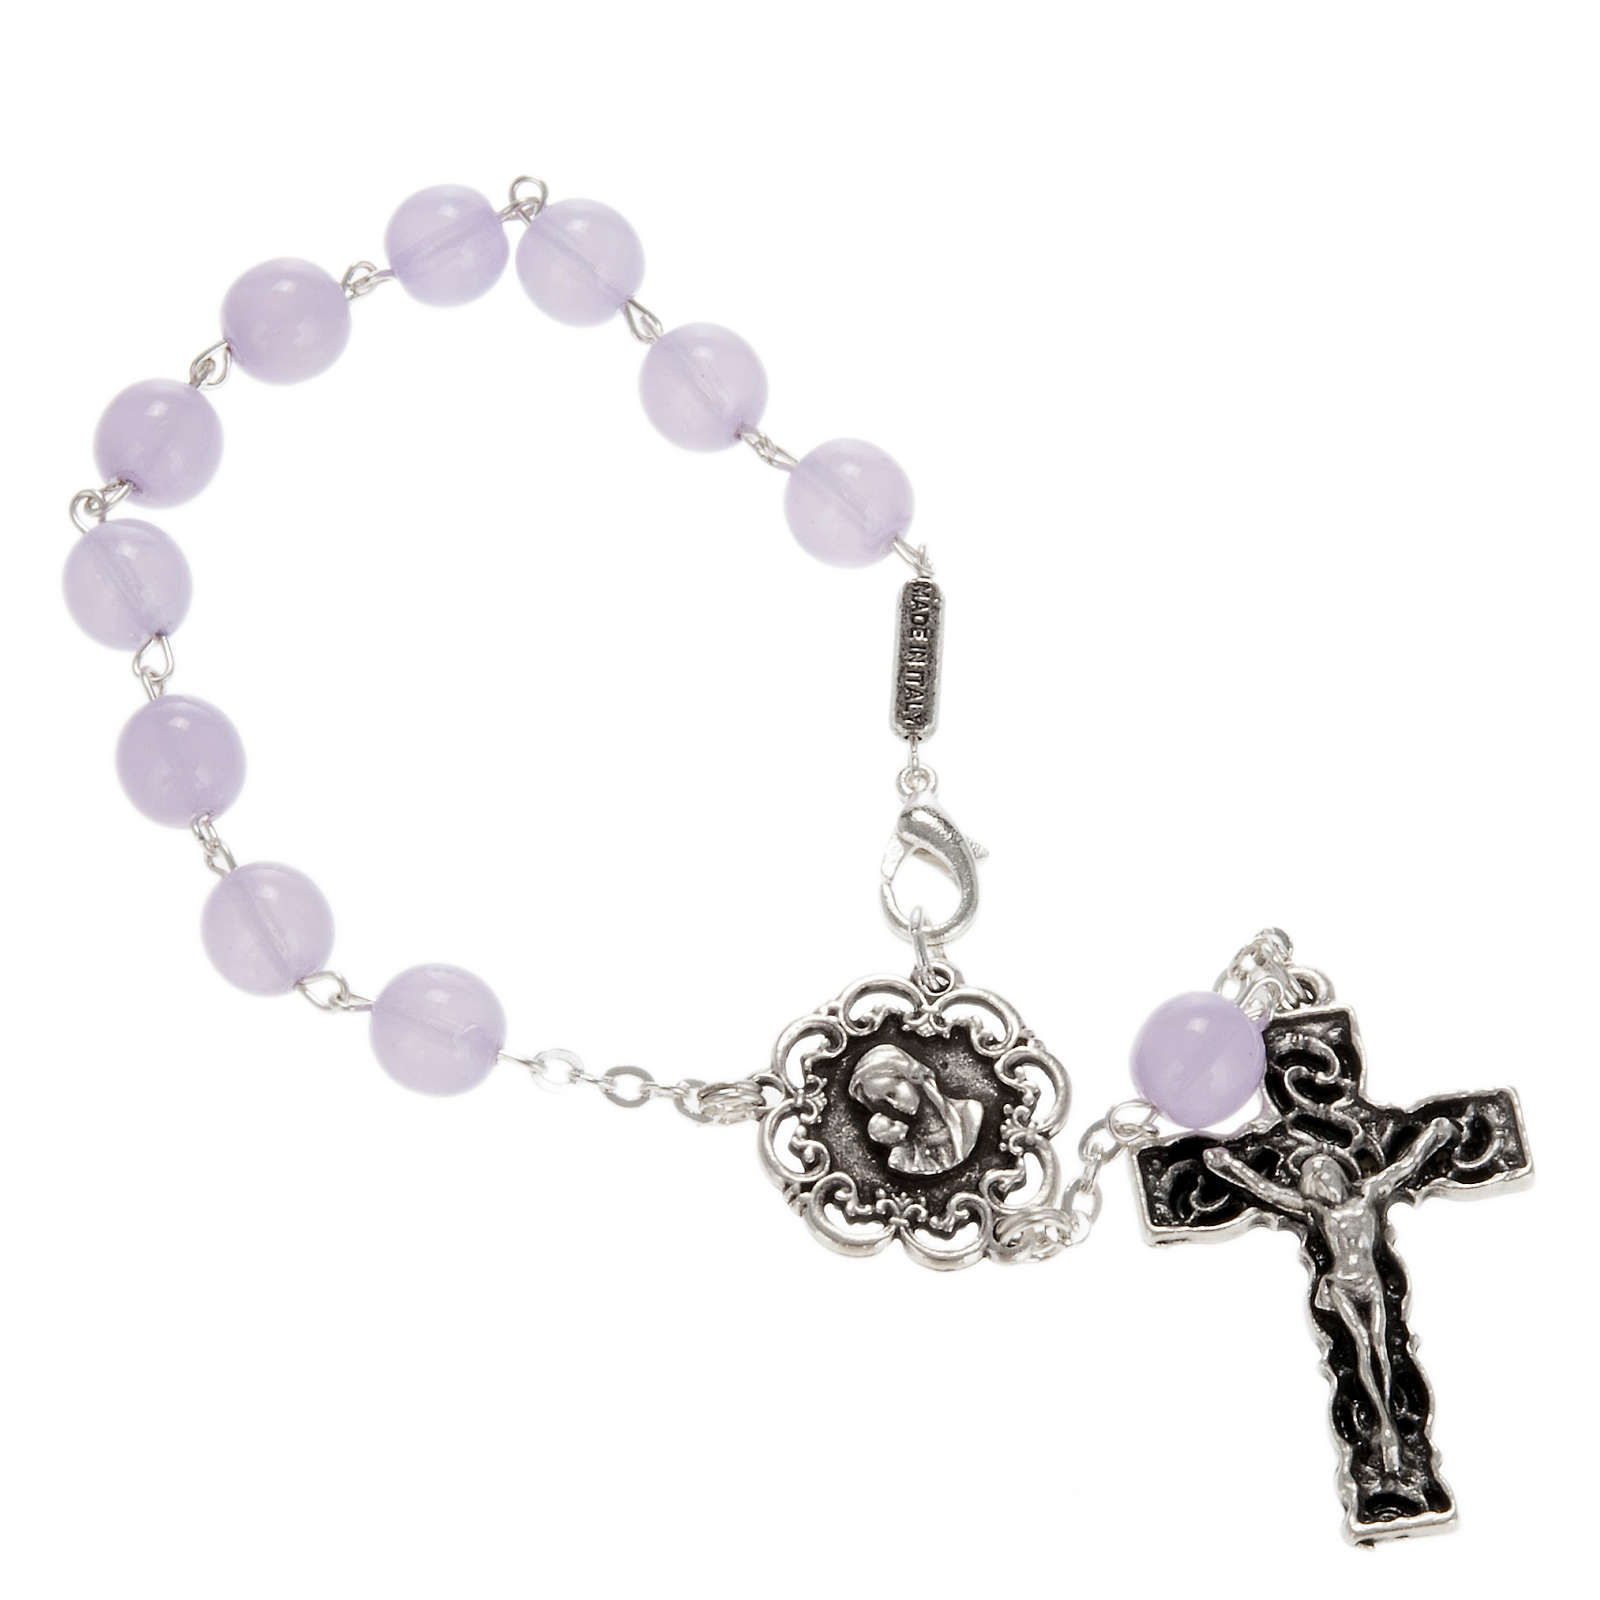 Ghirelli single-decade rosary in lilac glass 8mm 4